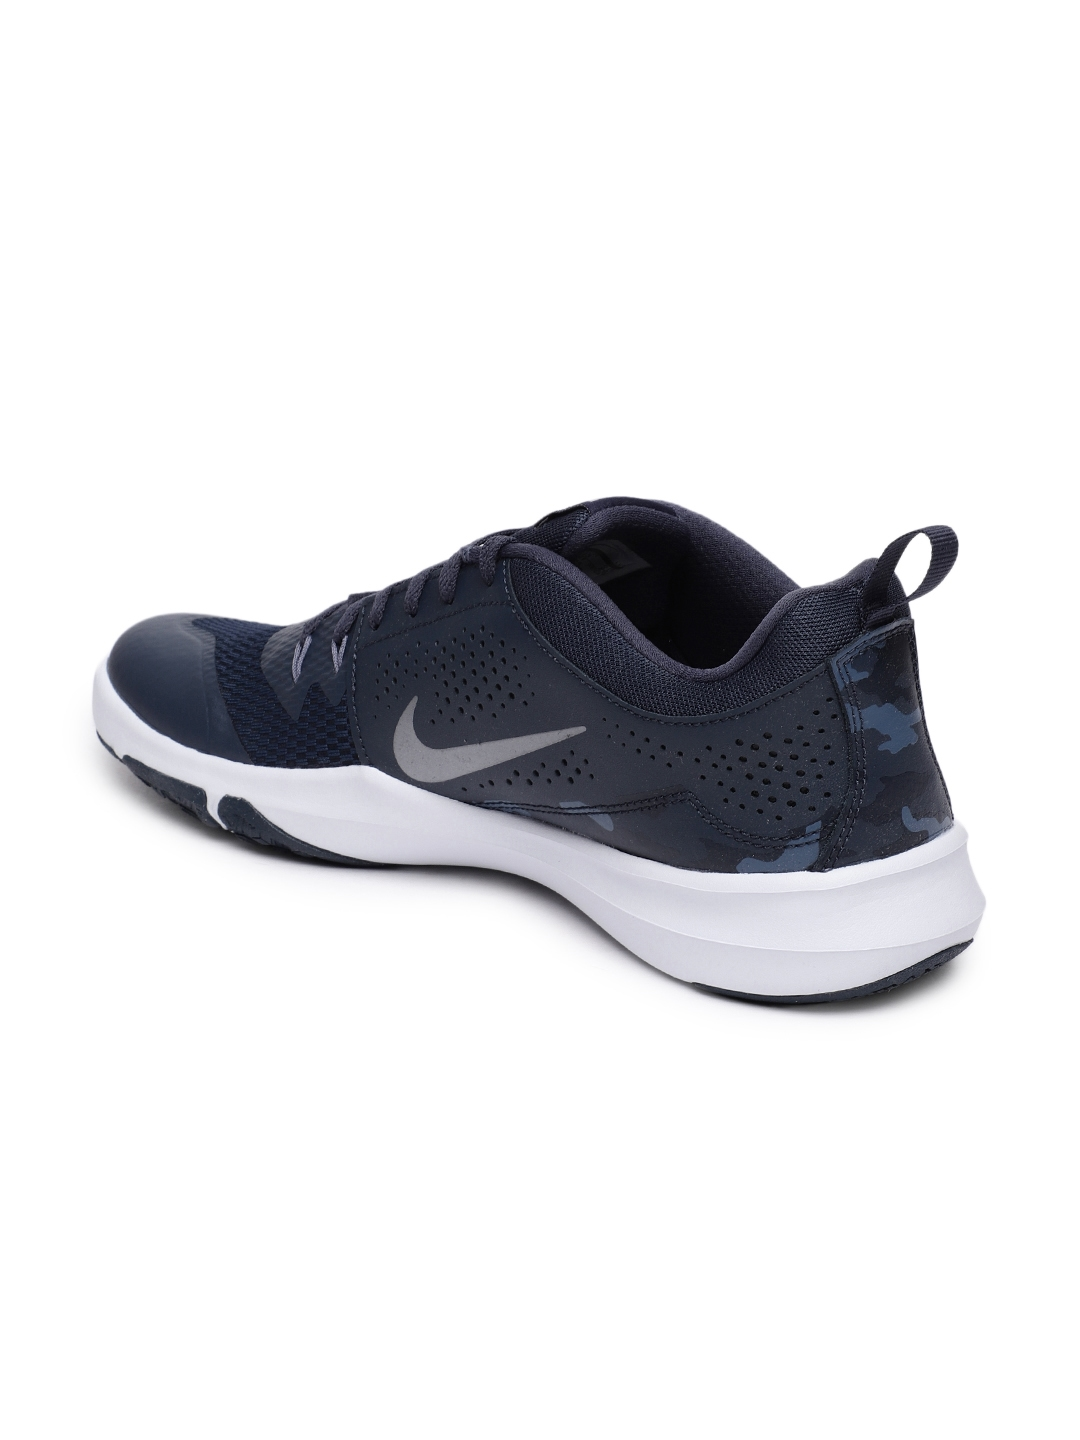 12e7ab4cbd3 Buy Nike Men Navy Legend Trainer Shoes - Sports Shoes for Men ...